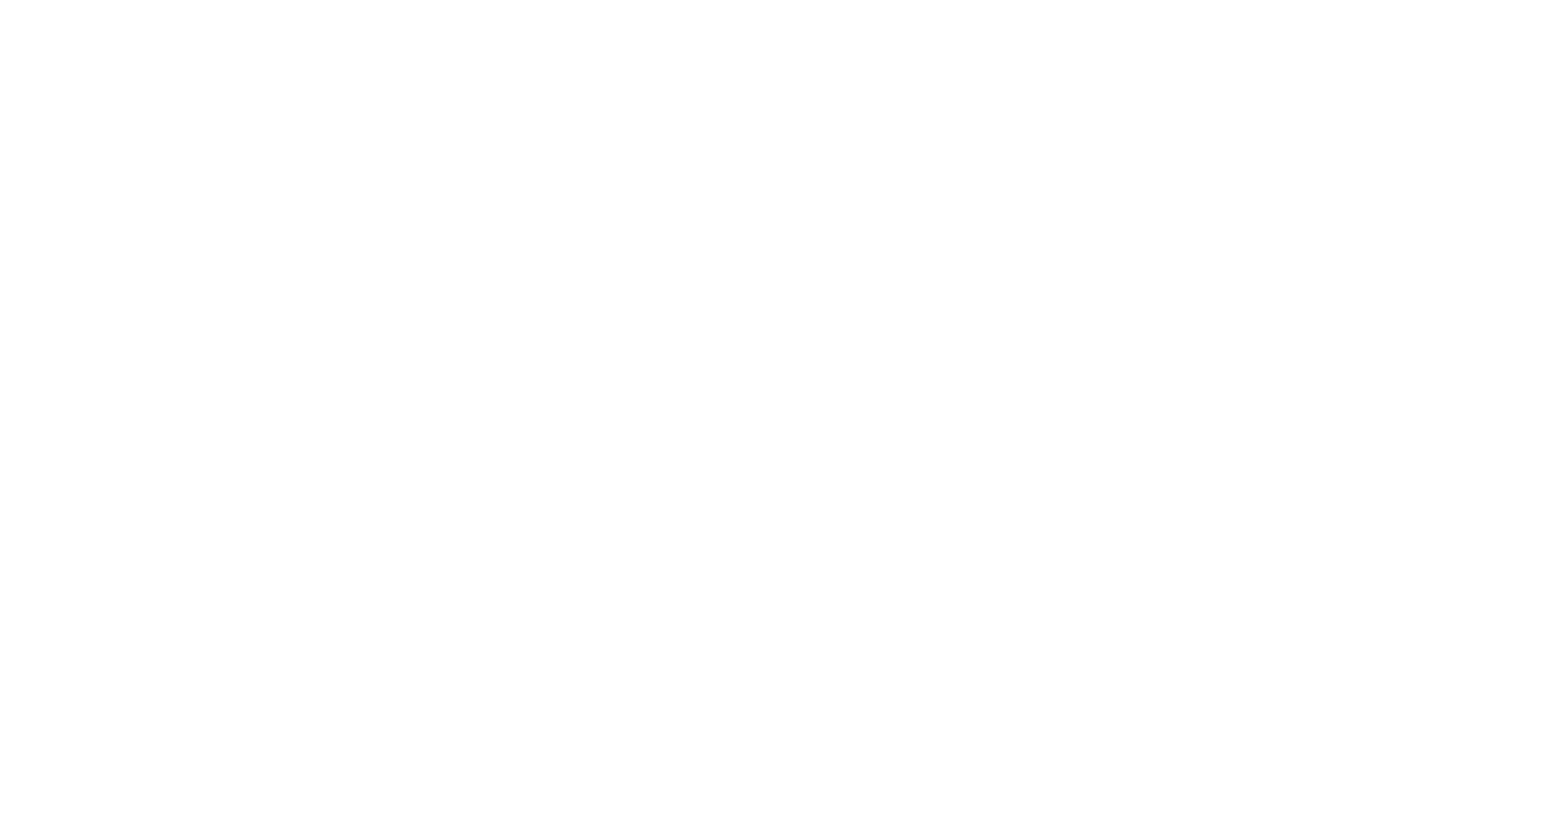 Limnios Property Group Logo